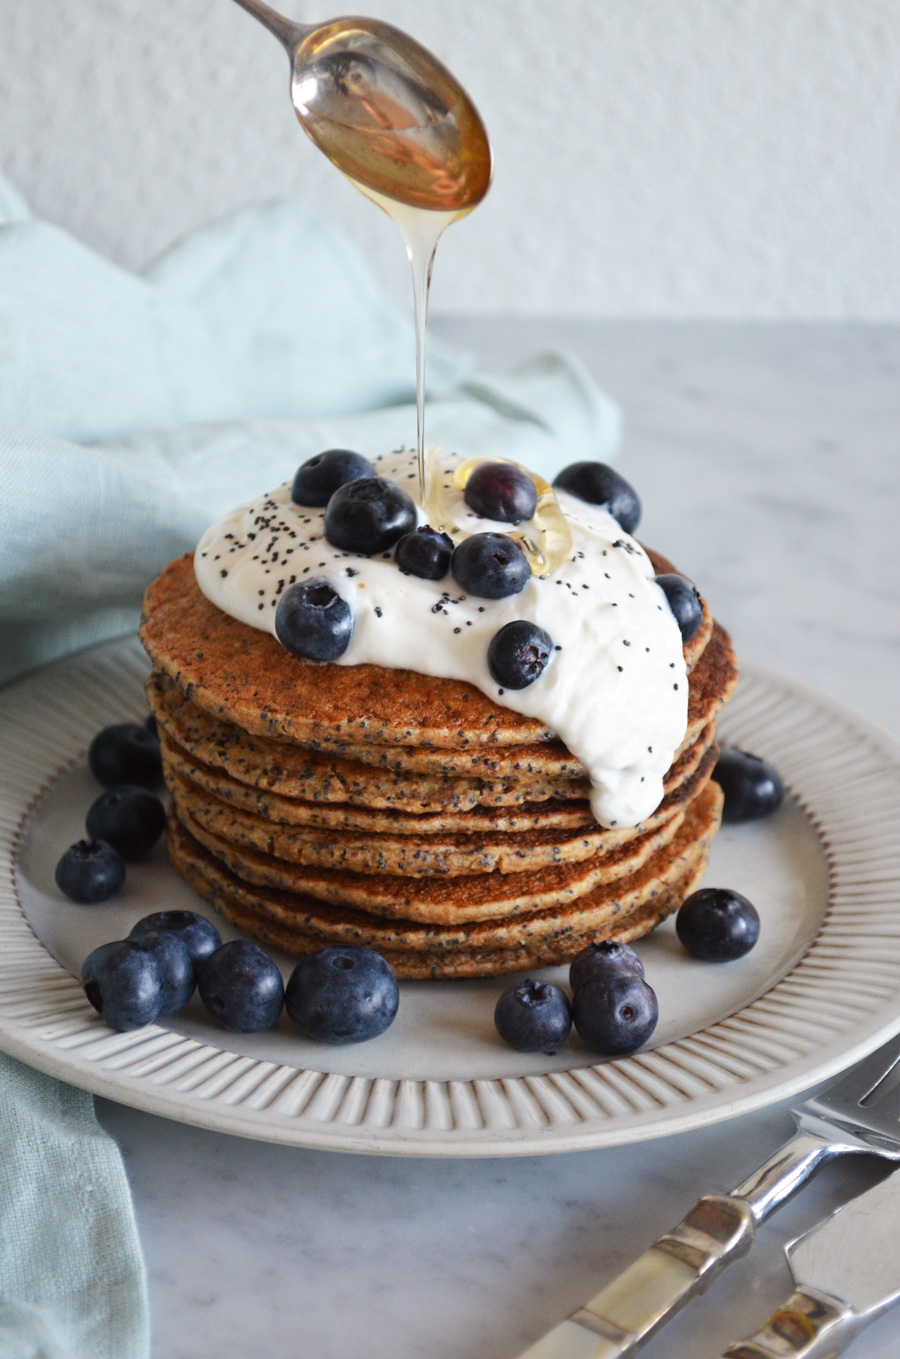 Lemon & Poppyseed pancakes